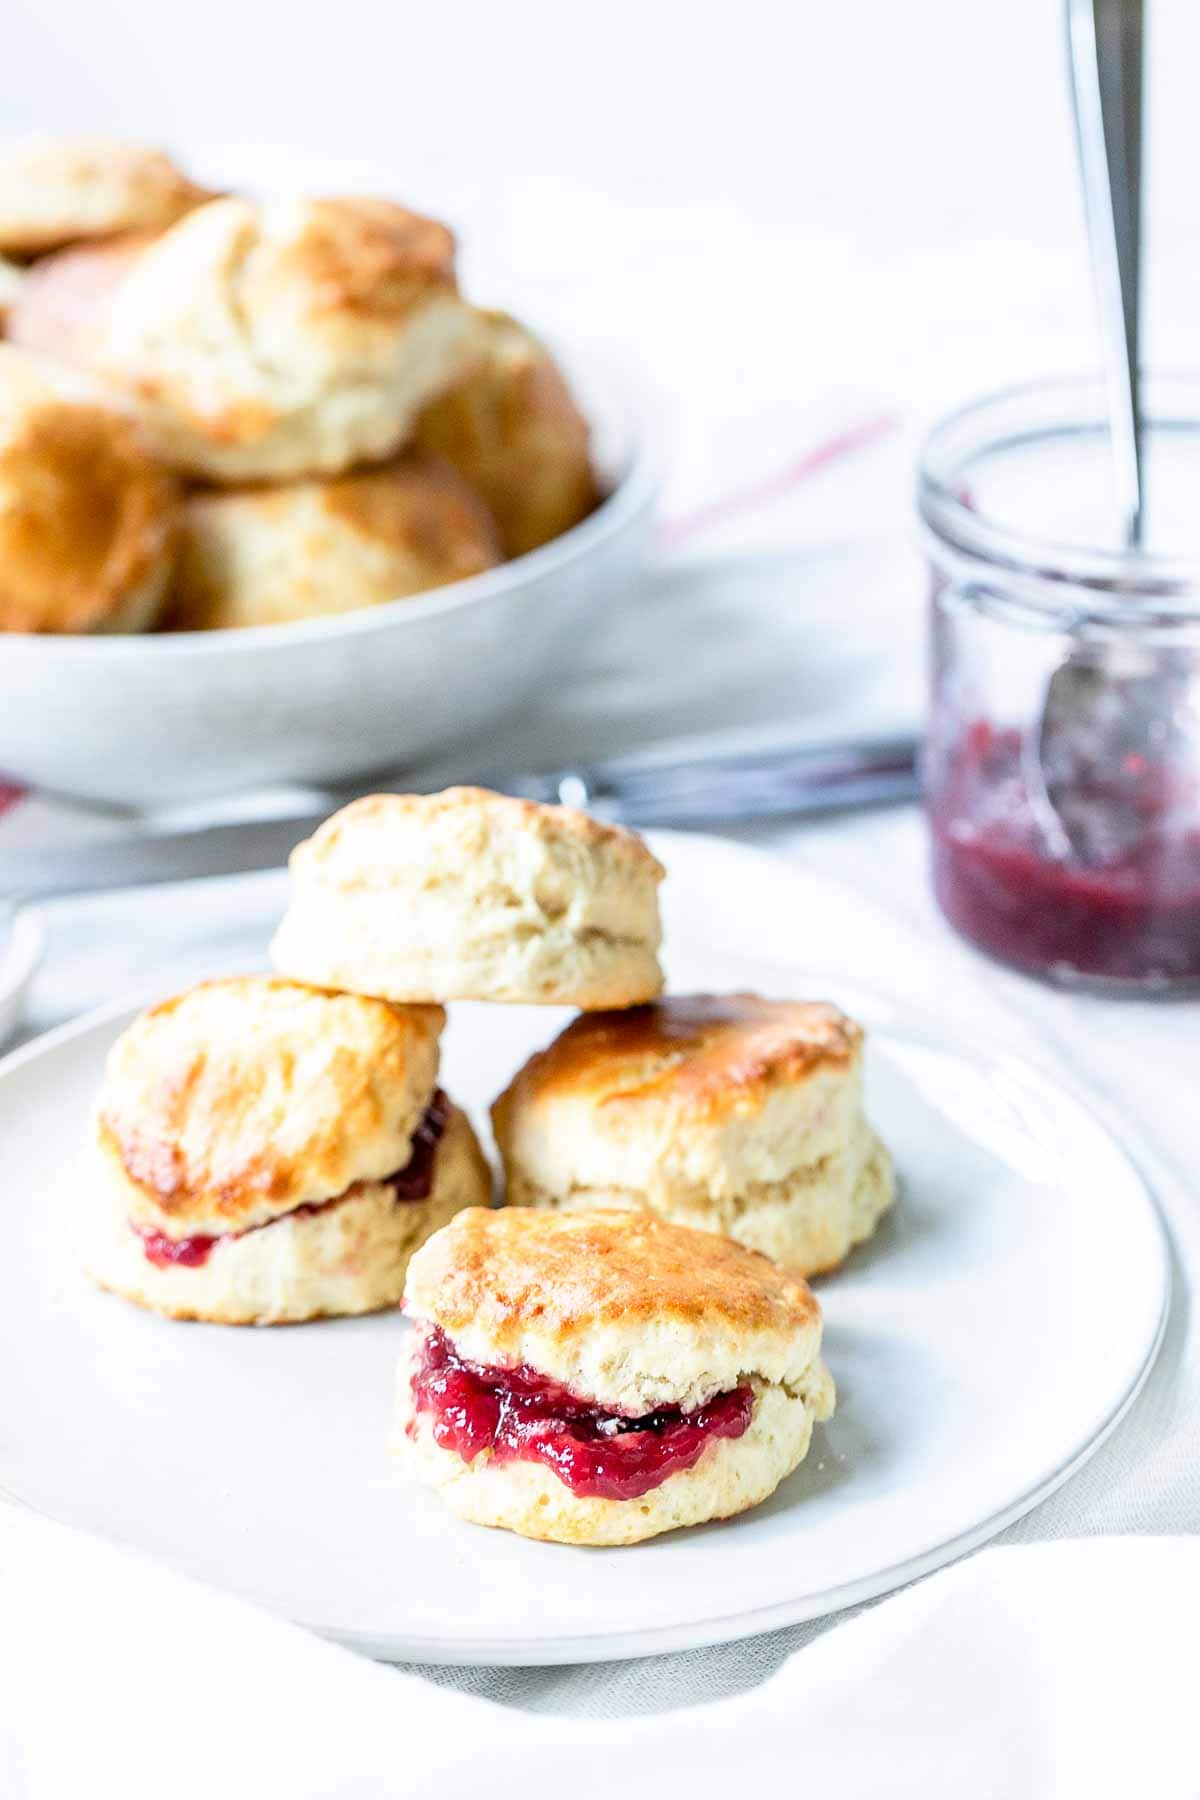 Looking for quick and easy scones? Take a look at this delicious traditional English scones recipe. Eat them with jam, clotted cream or butter. Visit fastfoodbistro.com for the full recipe #scones #Englishscones #howtomakescones #easyscones #Englishsconesrecipe